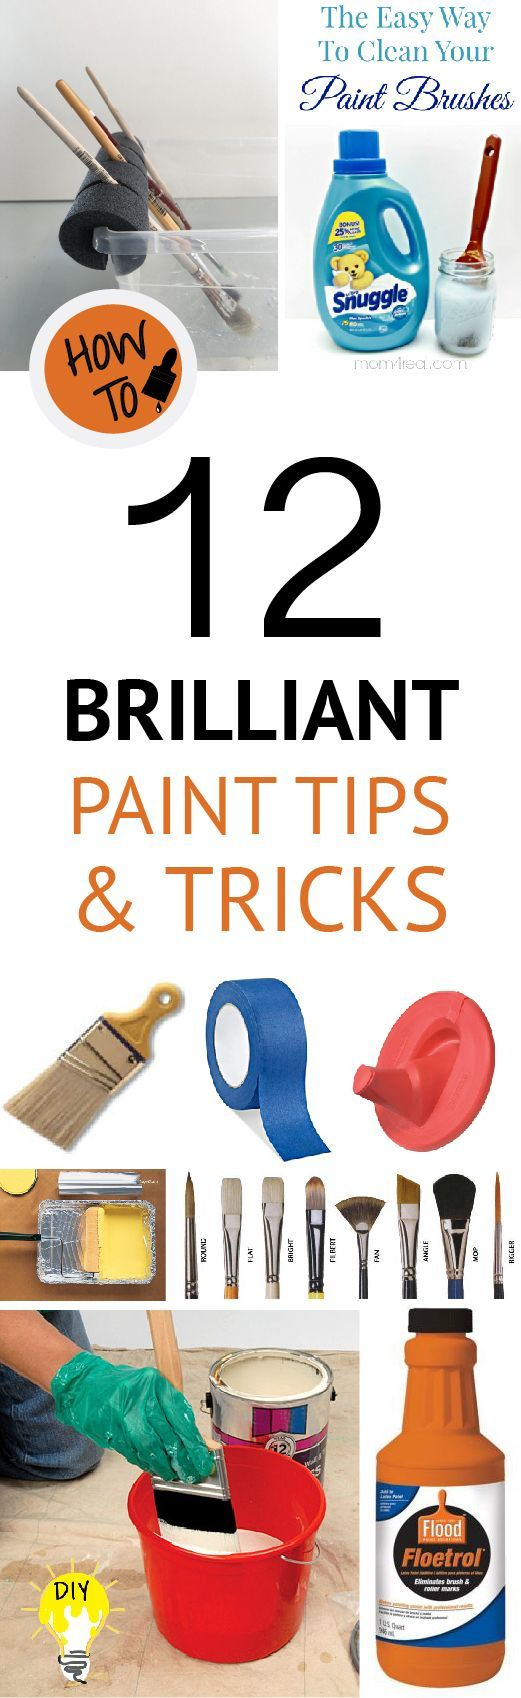 12 brilliant paint tips tricks painting tips and - Interior painting tips and tricks ...